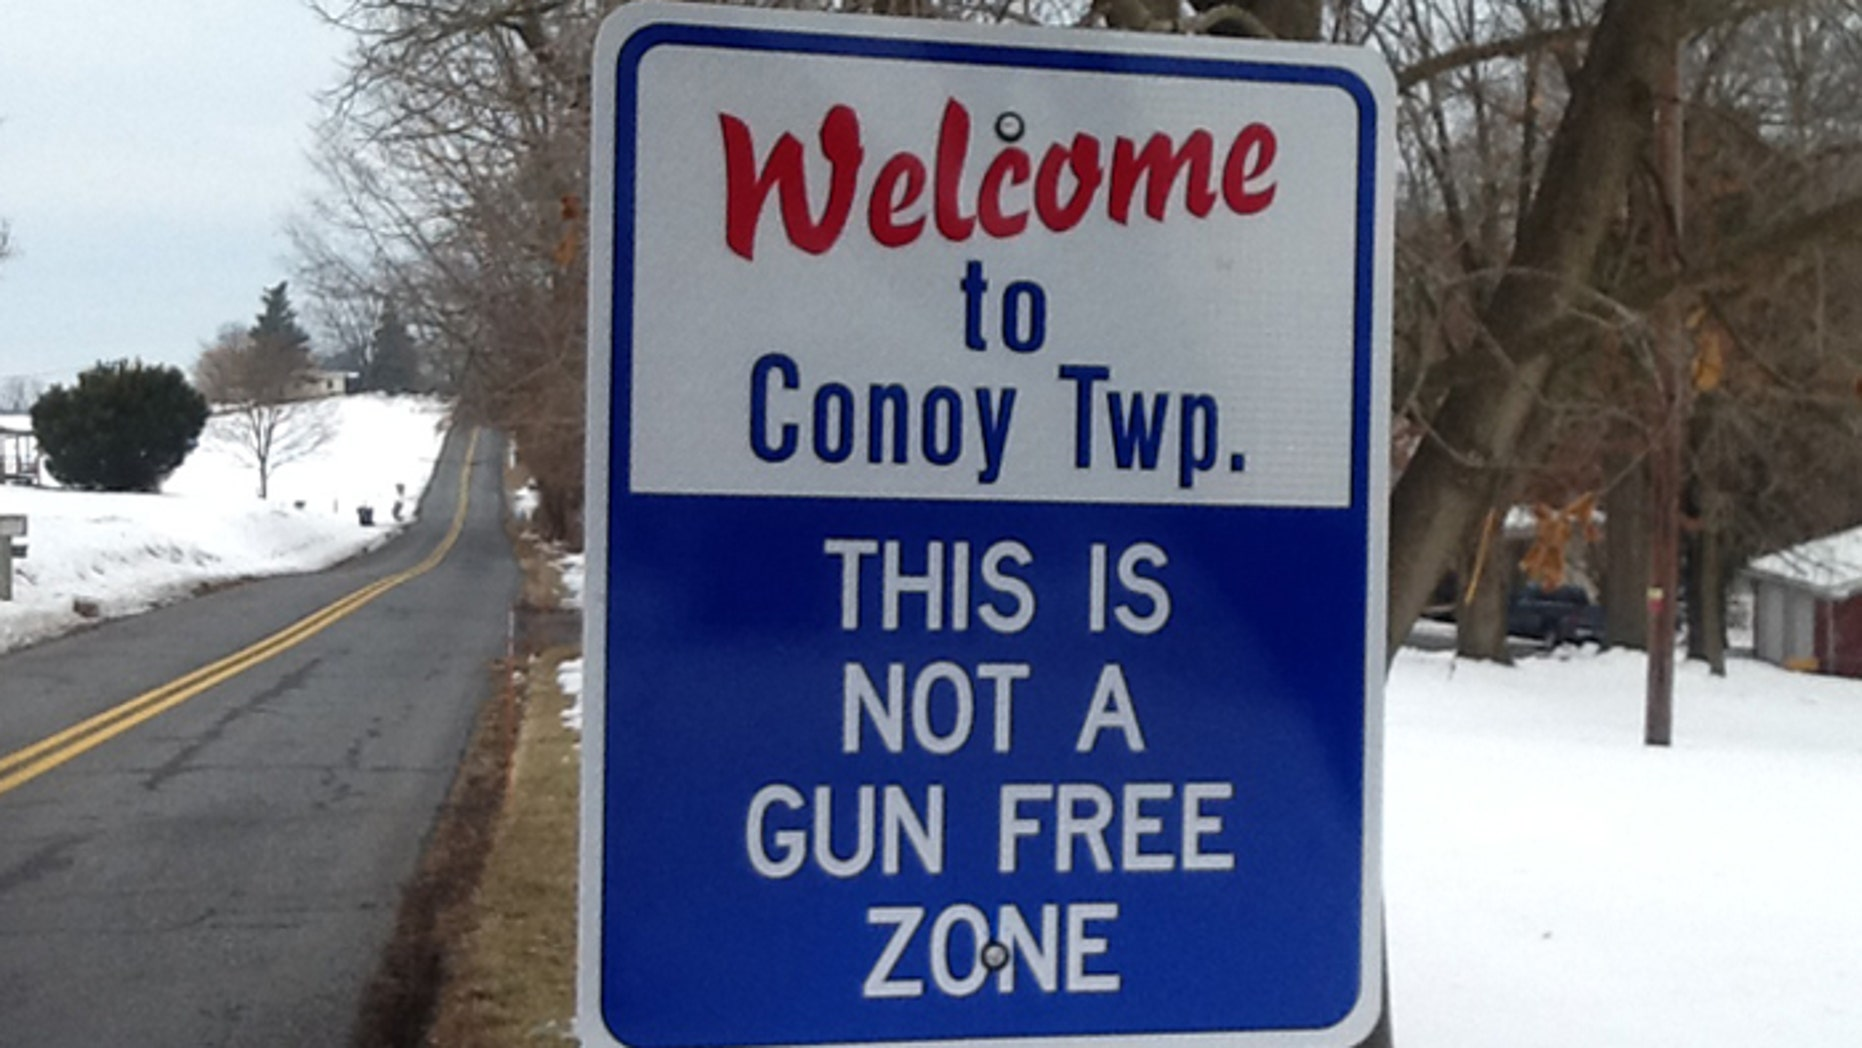 Signs marking the entry into the central Pennsylvania town of Conoy warn that the population may be armed. (Courtesy: Stephen Mohr)